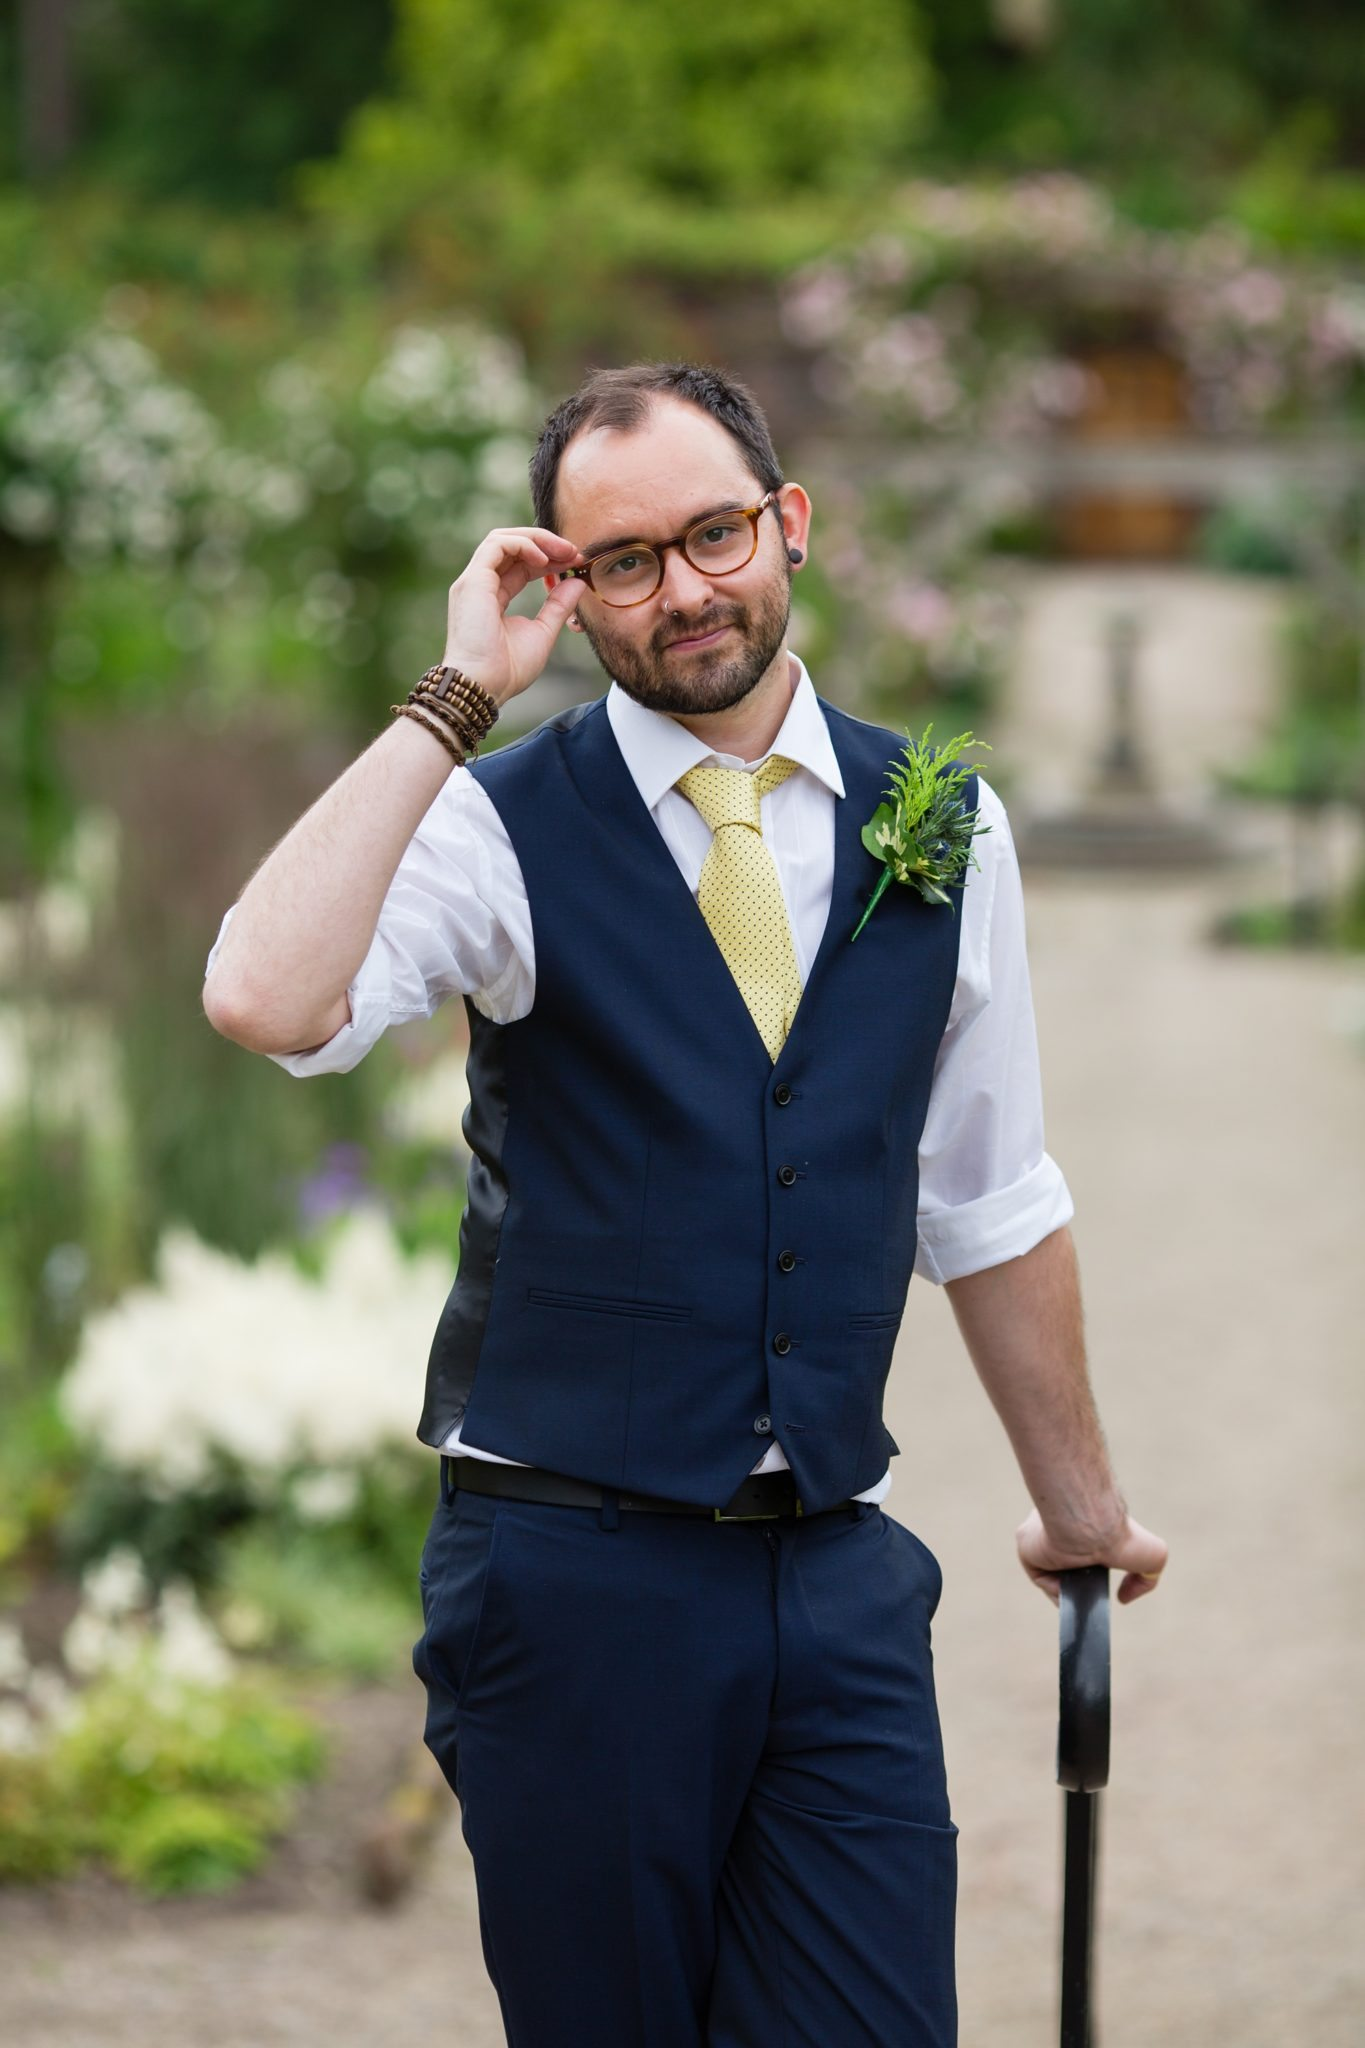 wedding guest with glasses looking at camera and leaning on cane